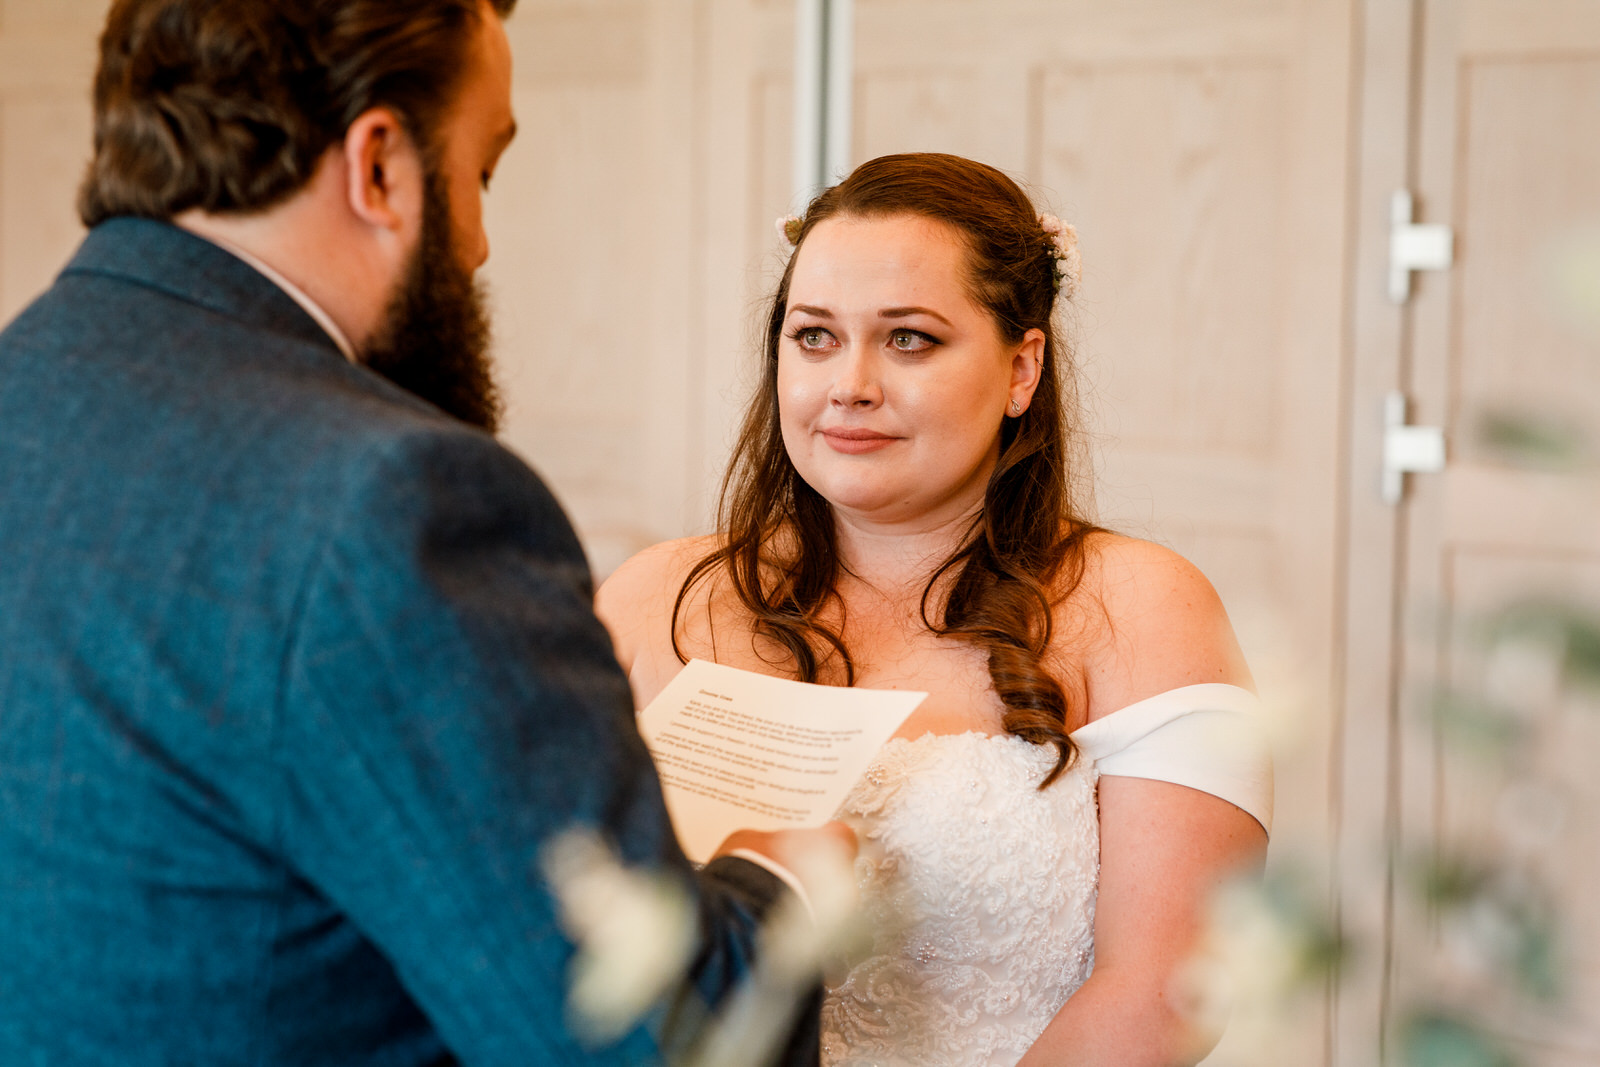 tear in brides eye at ceremony